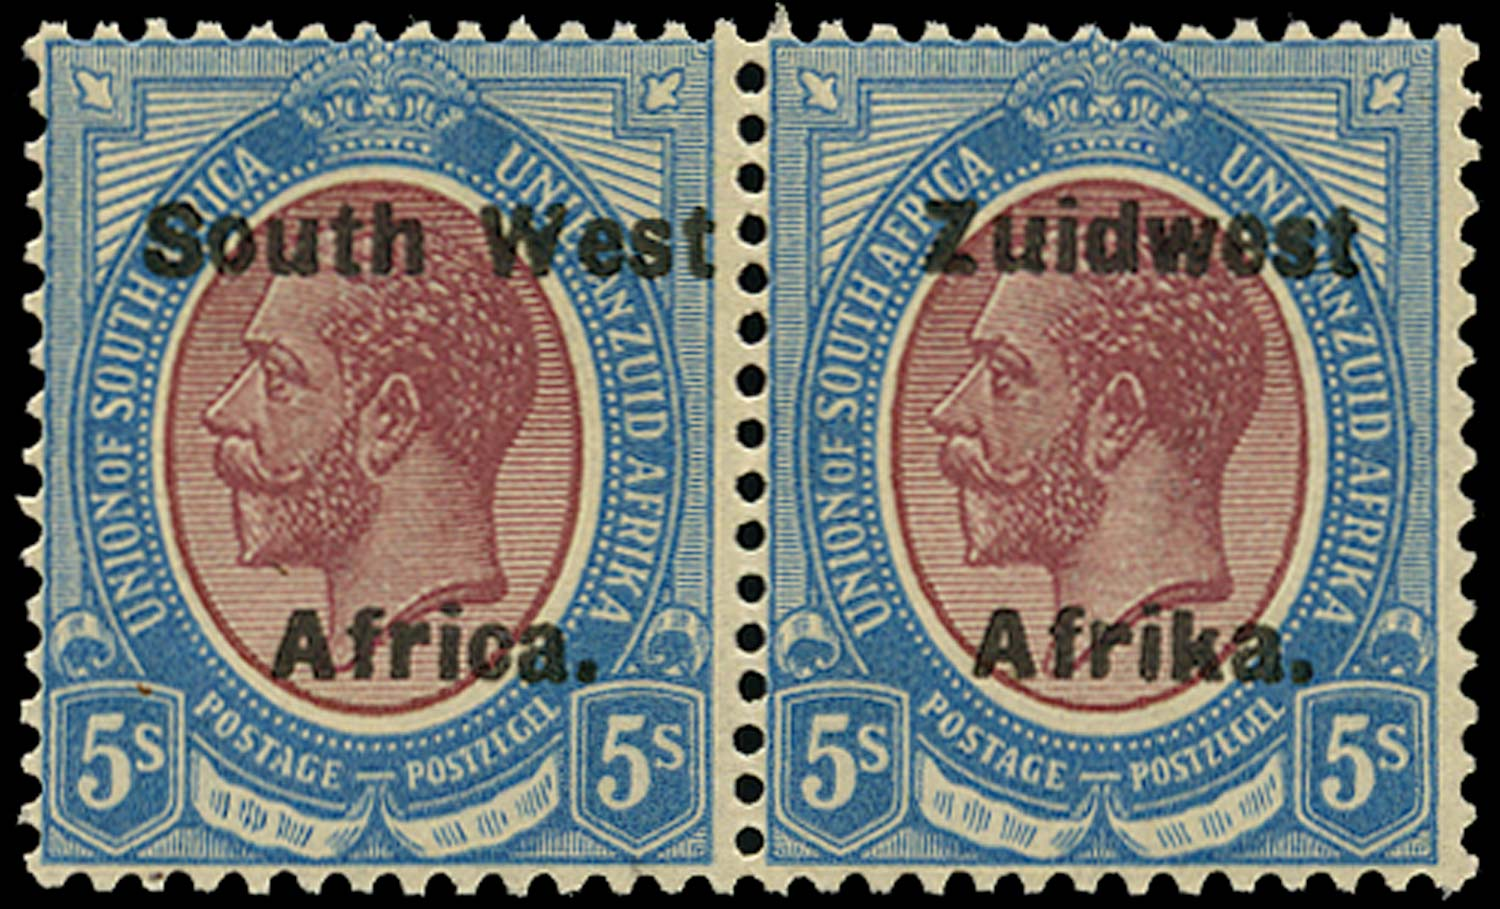 SOUTH WEST AFRICA 1923  SG38 Mint unmounted 5s purple and blue overprint setting VI